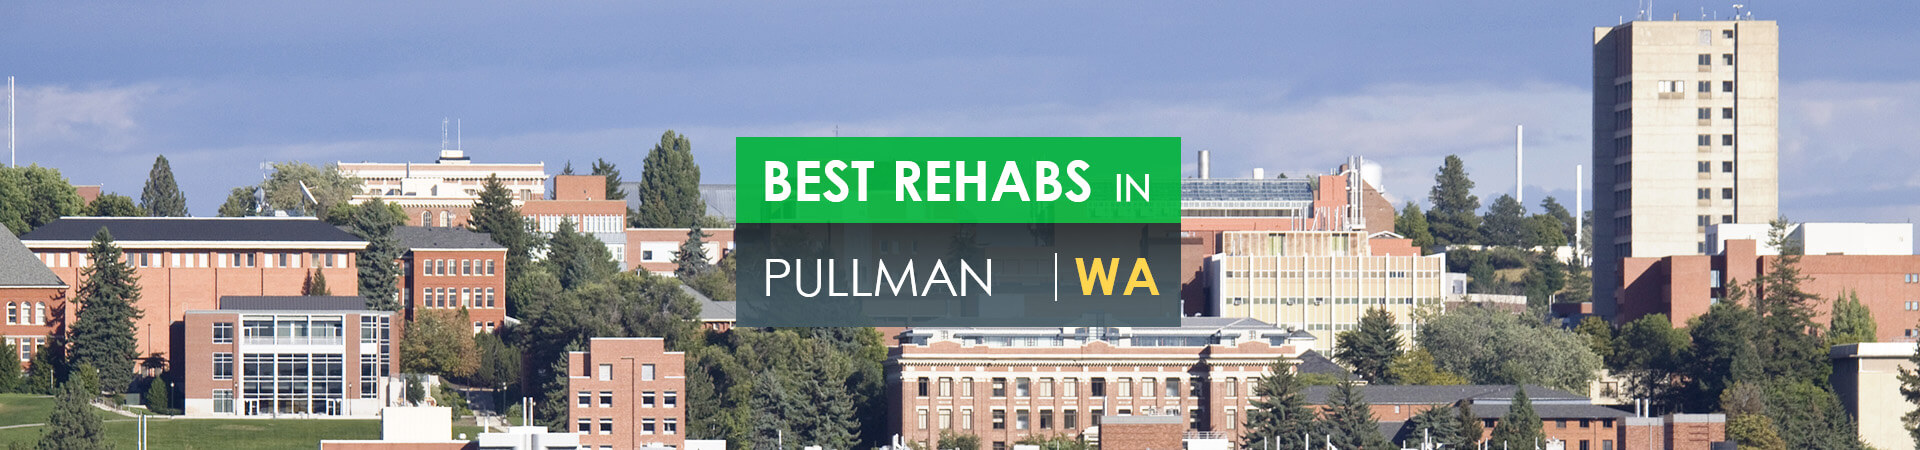 Best rehabs in Pullman, WA